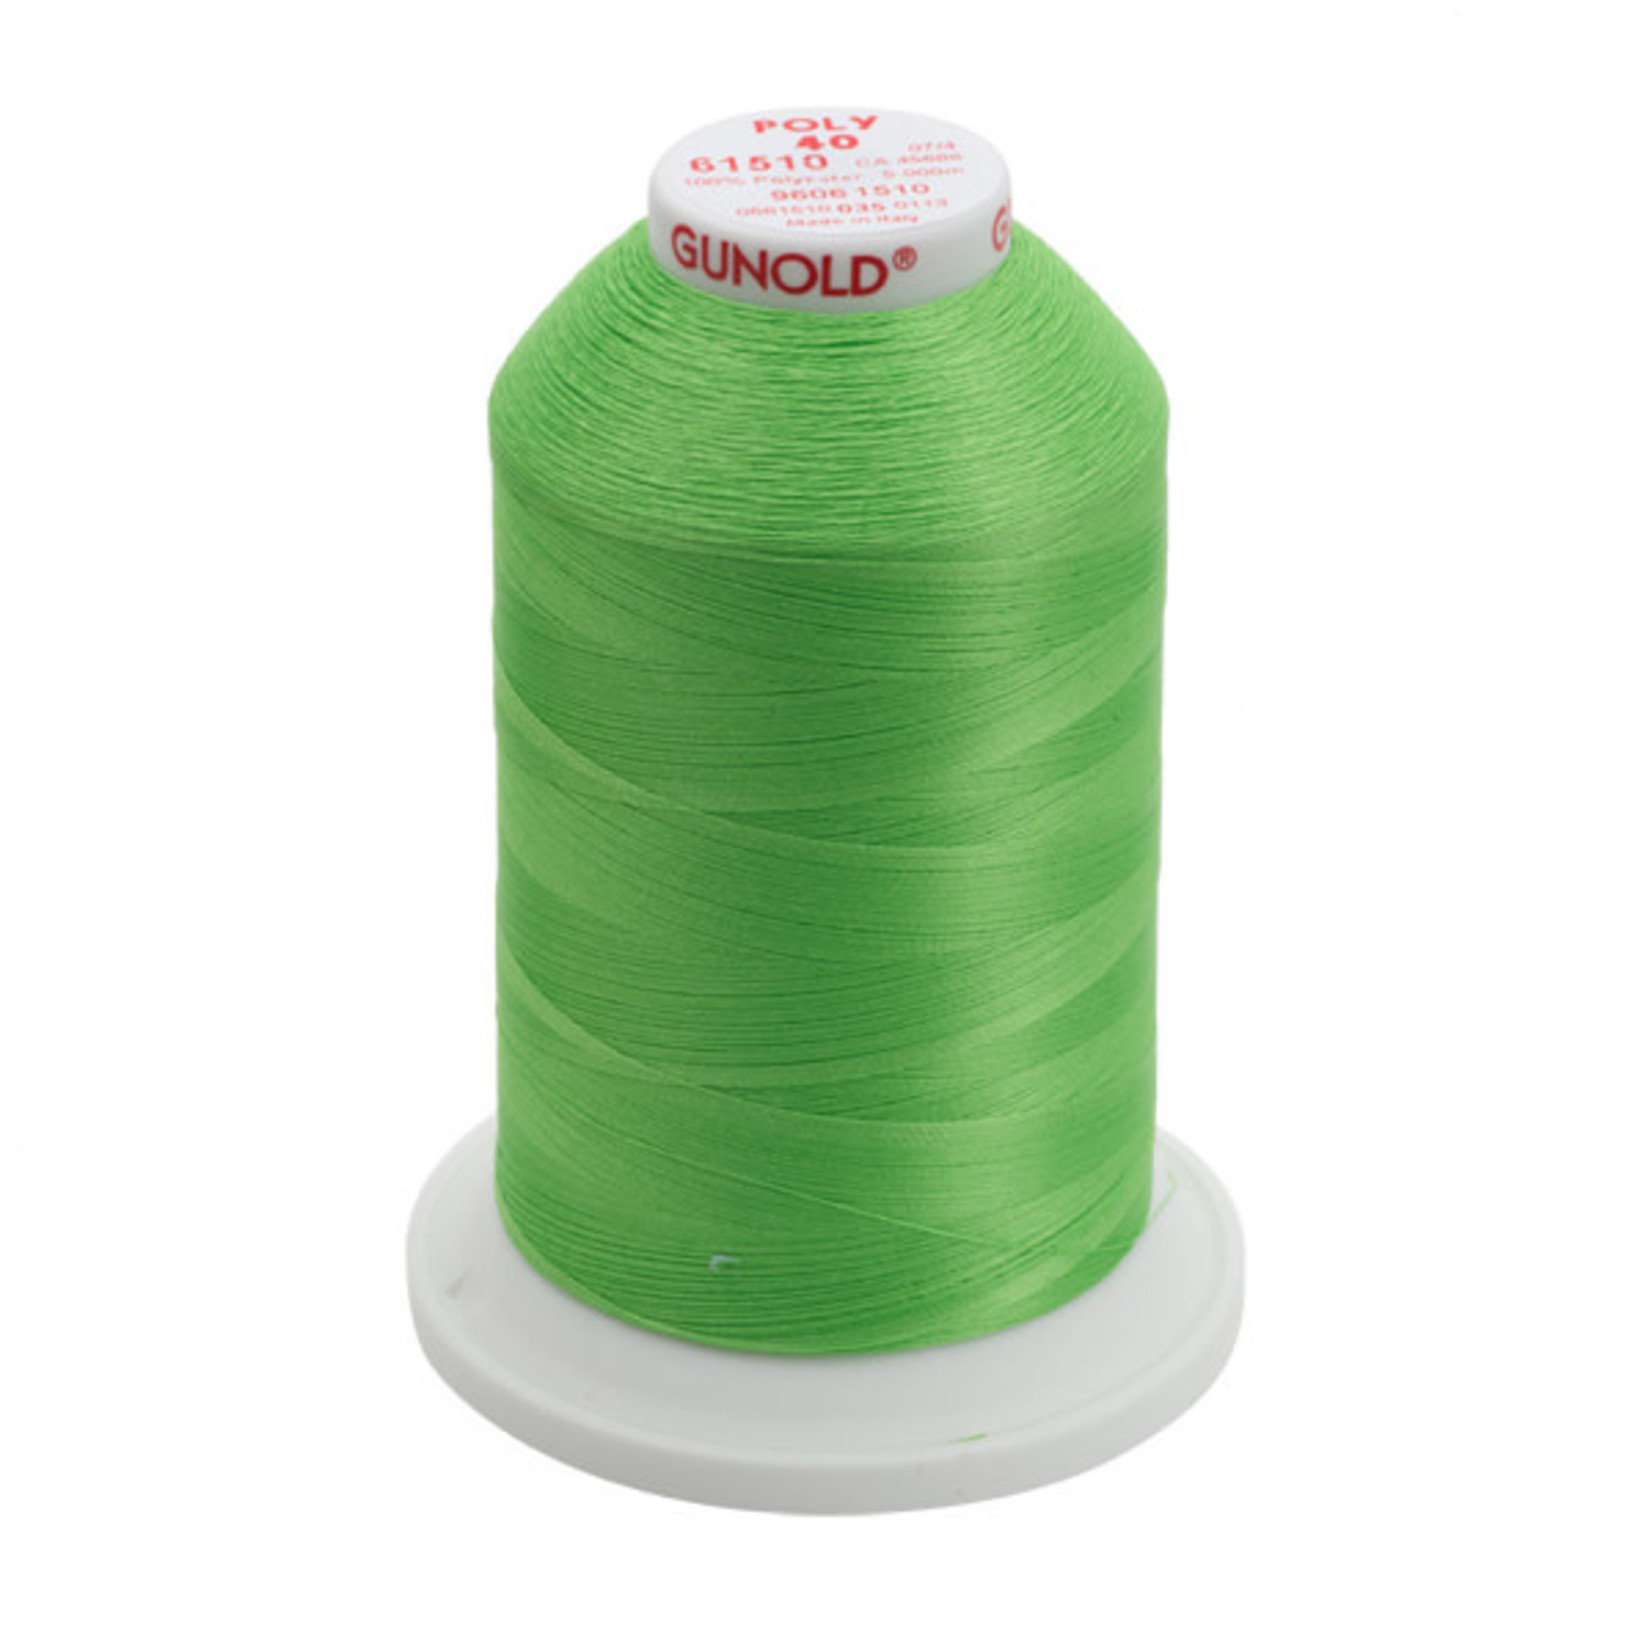 Gunold Poly 40 WT 61510 Lime Green 1000m